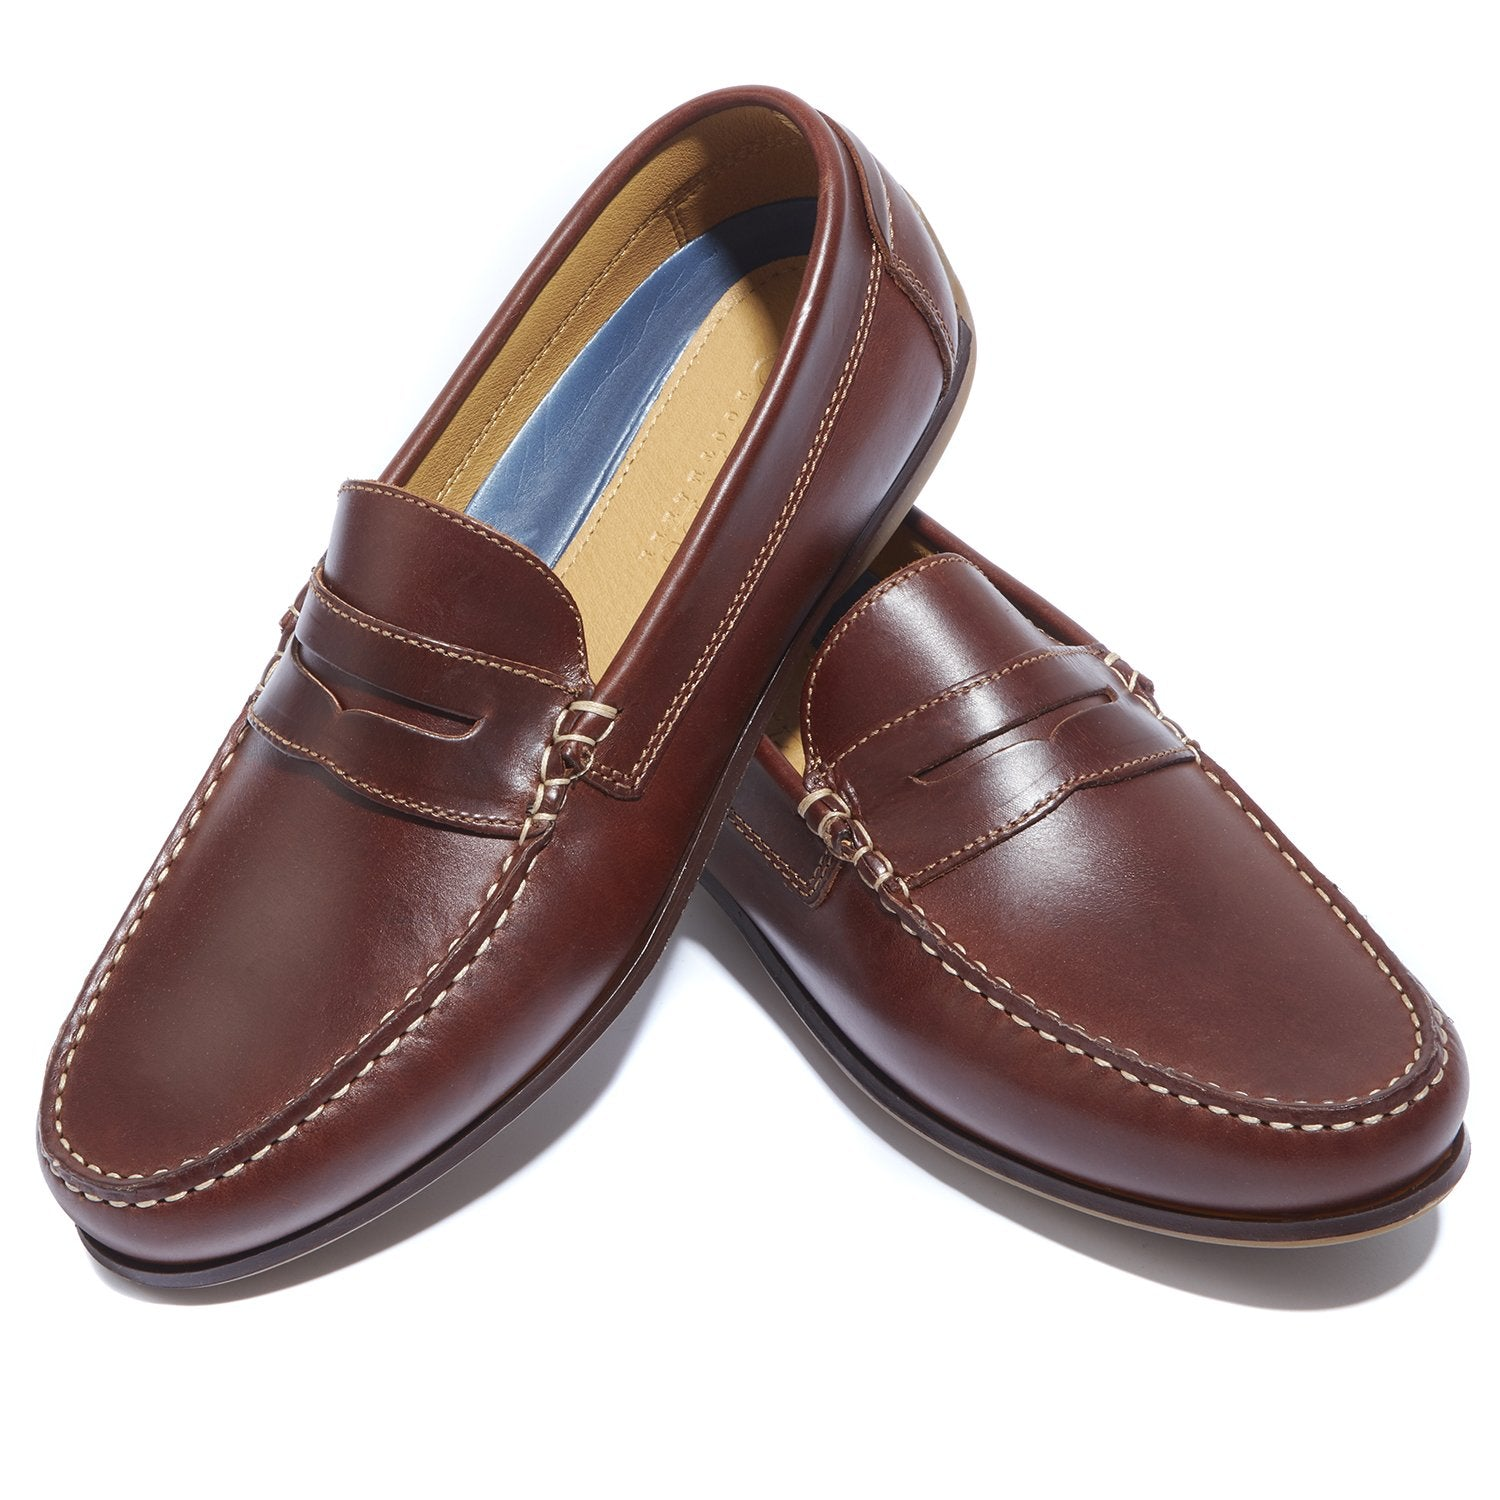 moccasin shoes from Jones Bootmaker